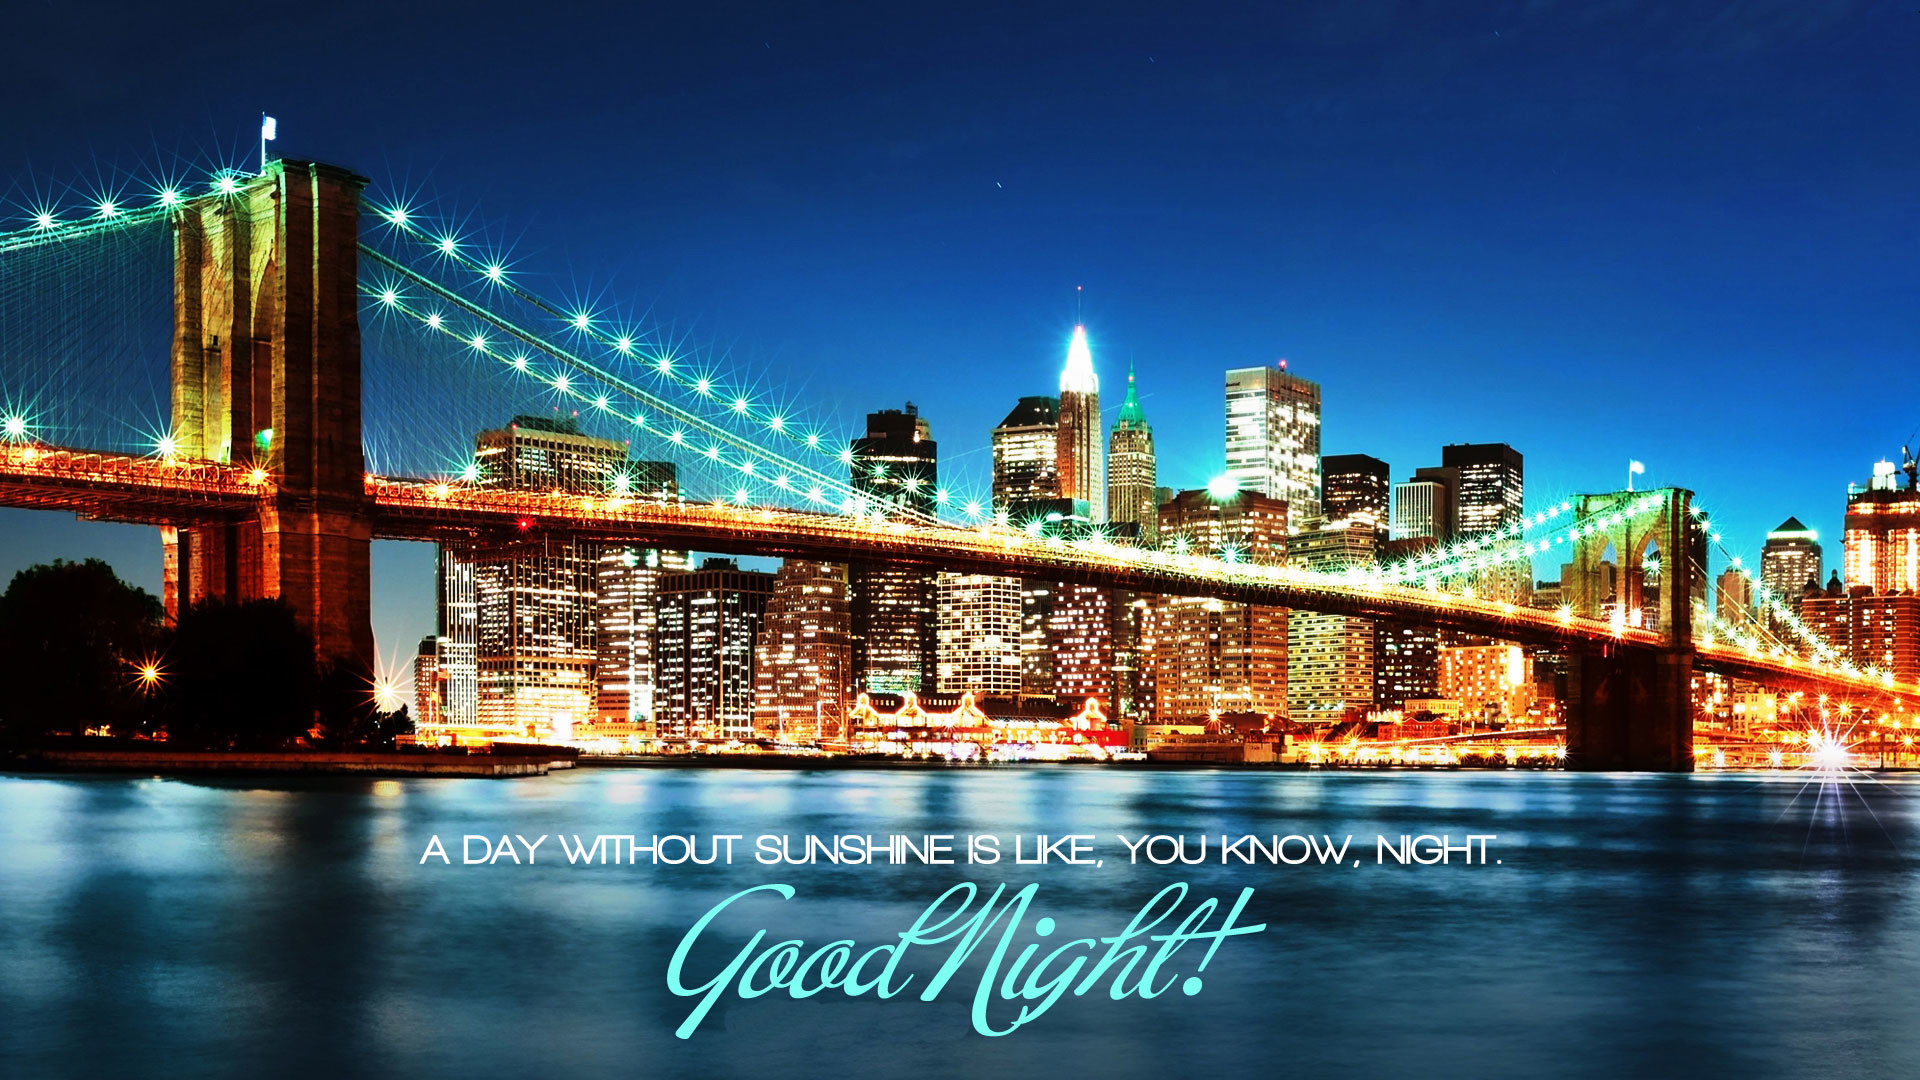 hd pics photos awesome good night quote city night lights hd quality desktop  background wallpaper